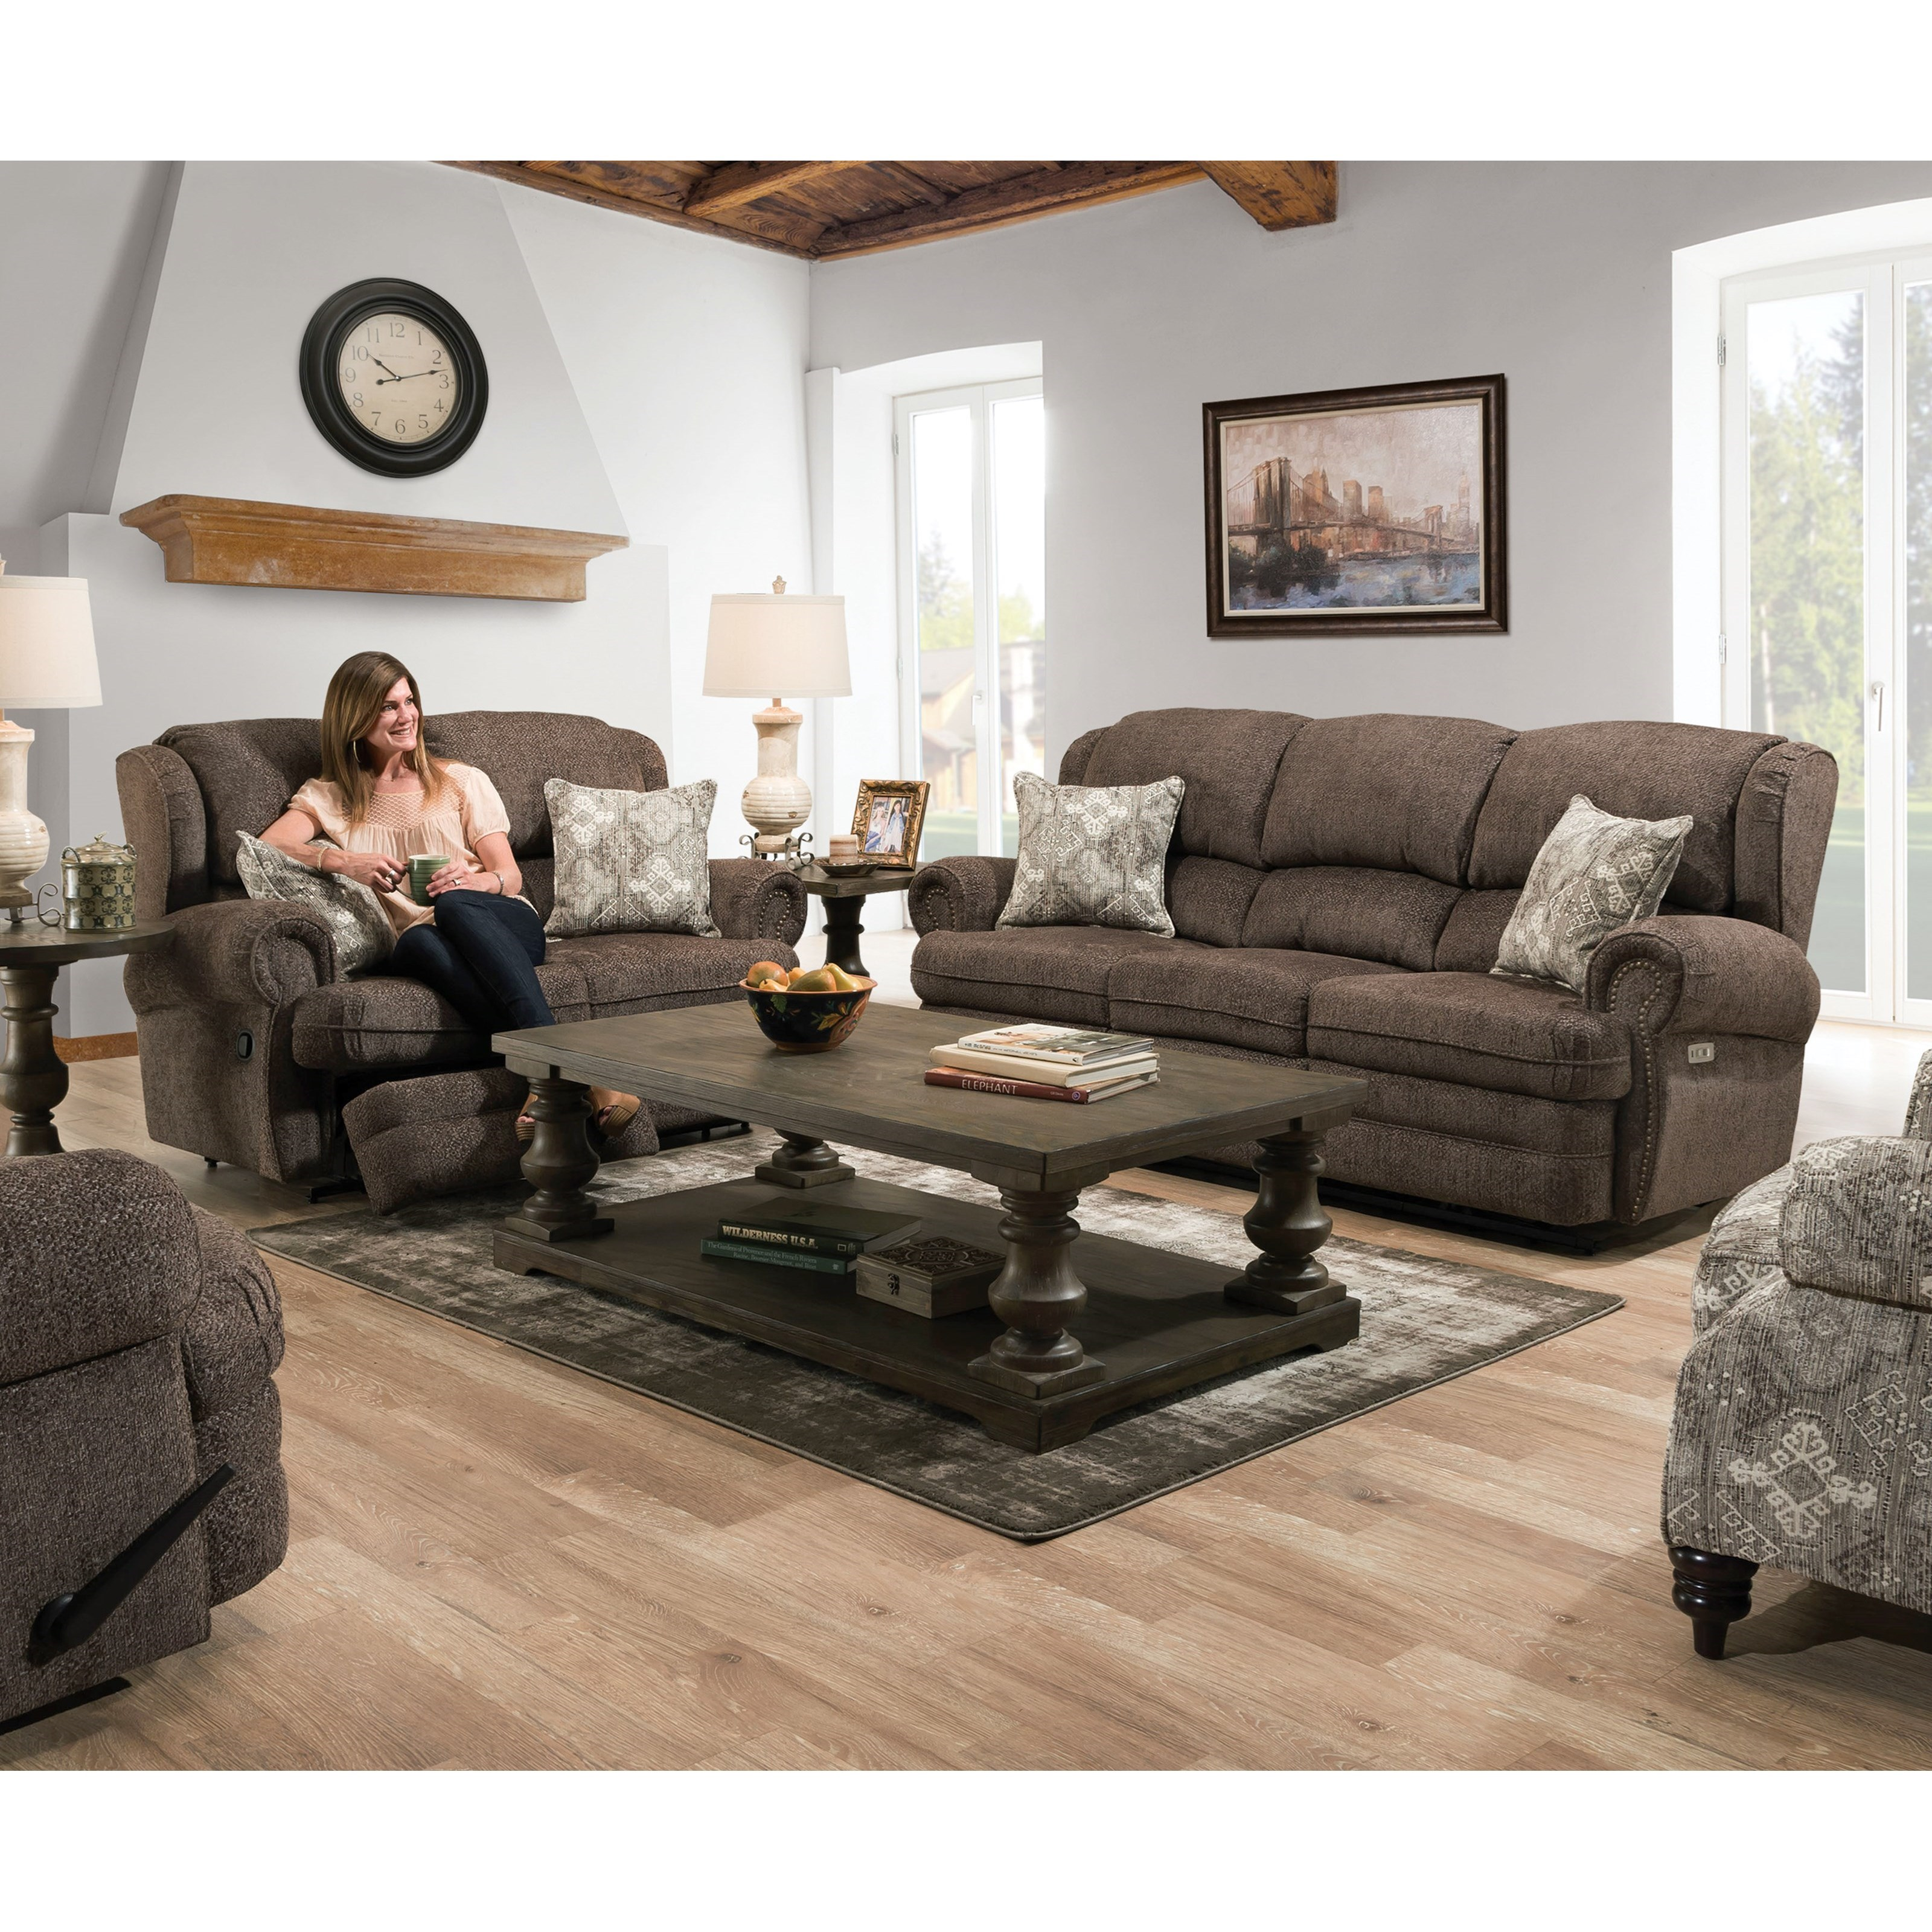 57000 Reclining Living Room Group by United Furniture Industries at Dream Home Interiors